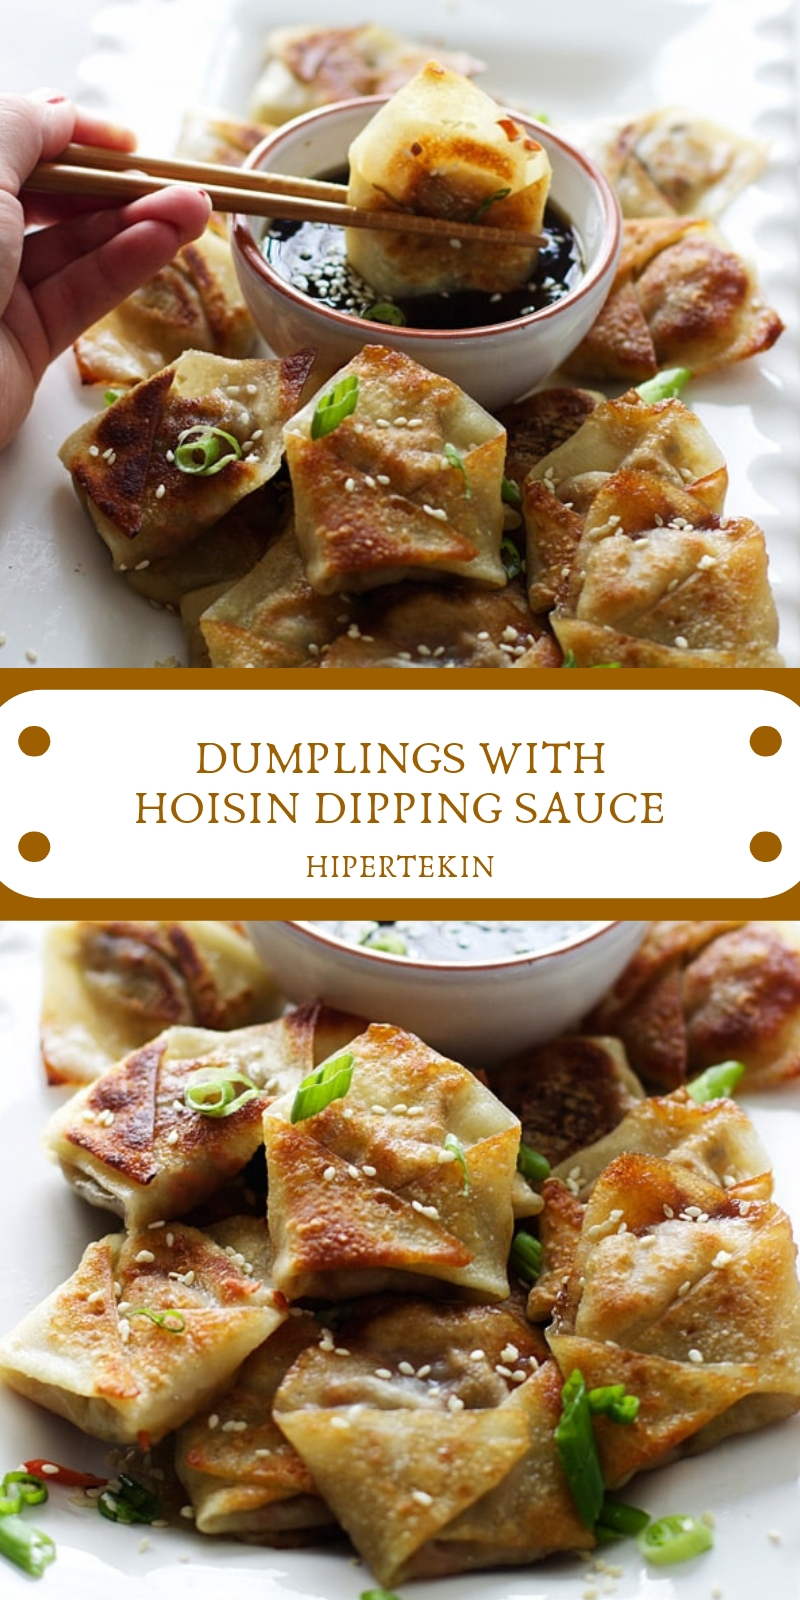 DUMPLINGS WITH HOISIN DIPPING SAUCE